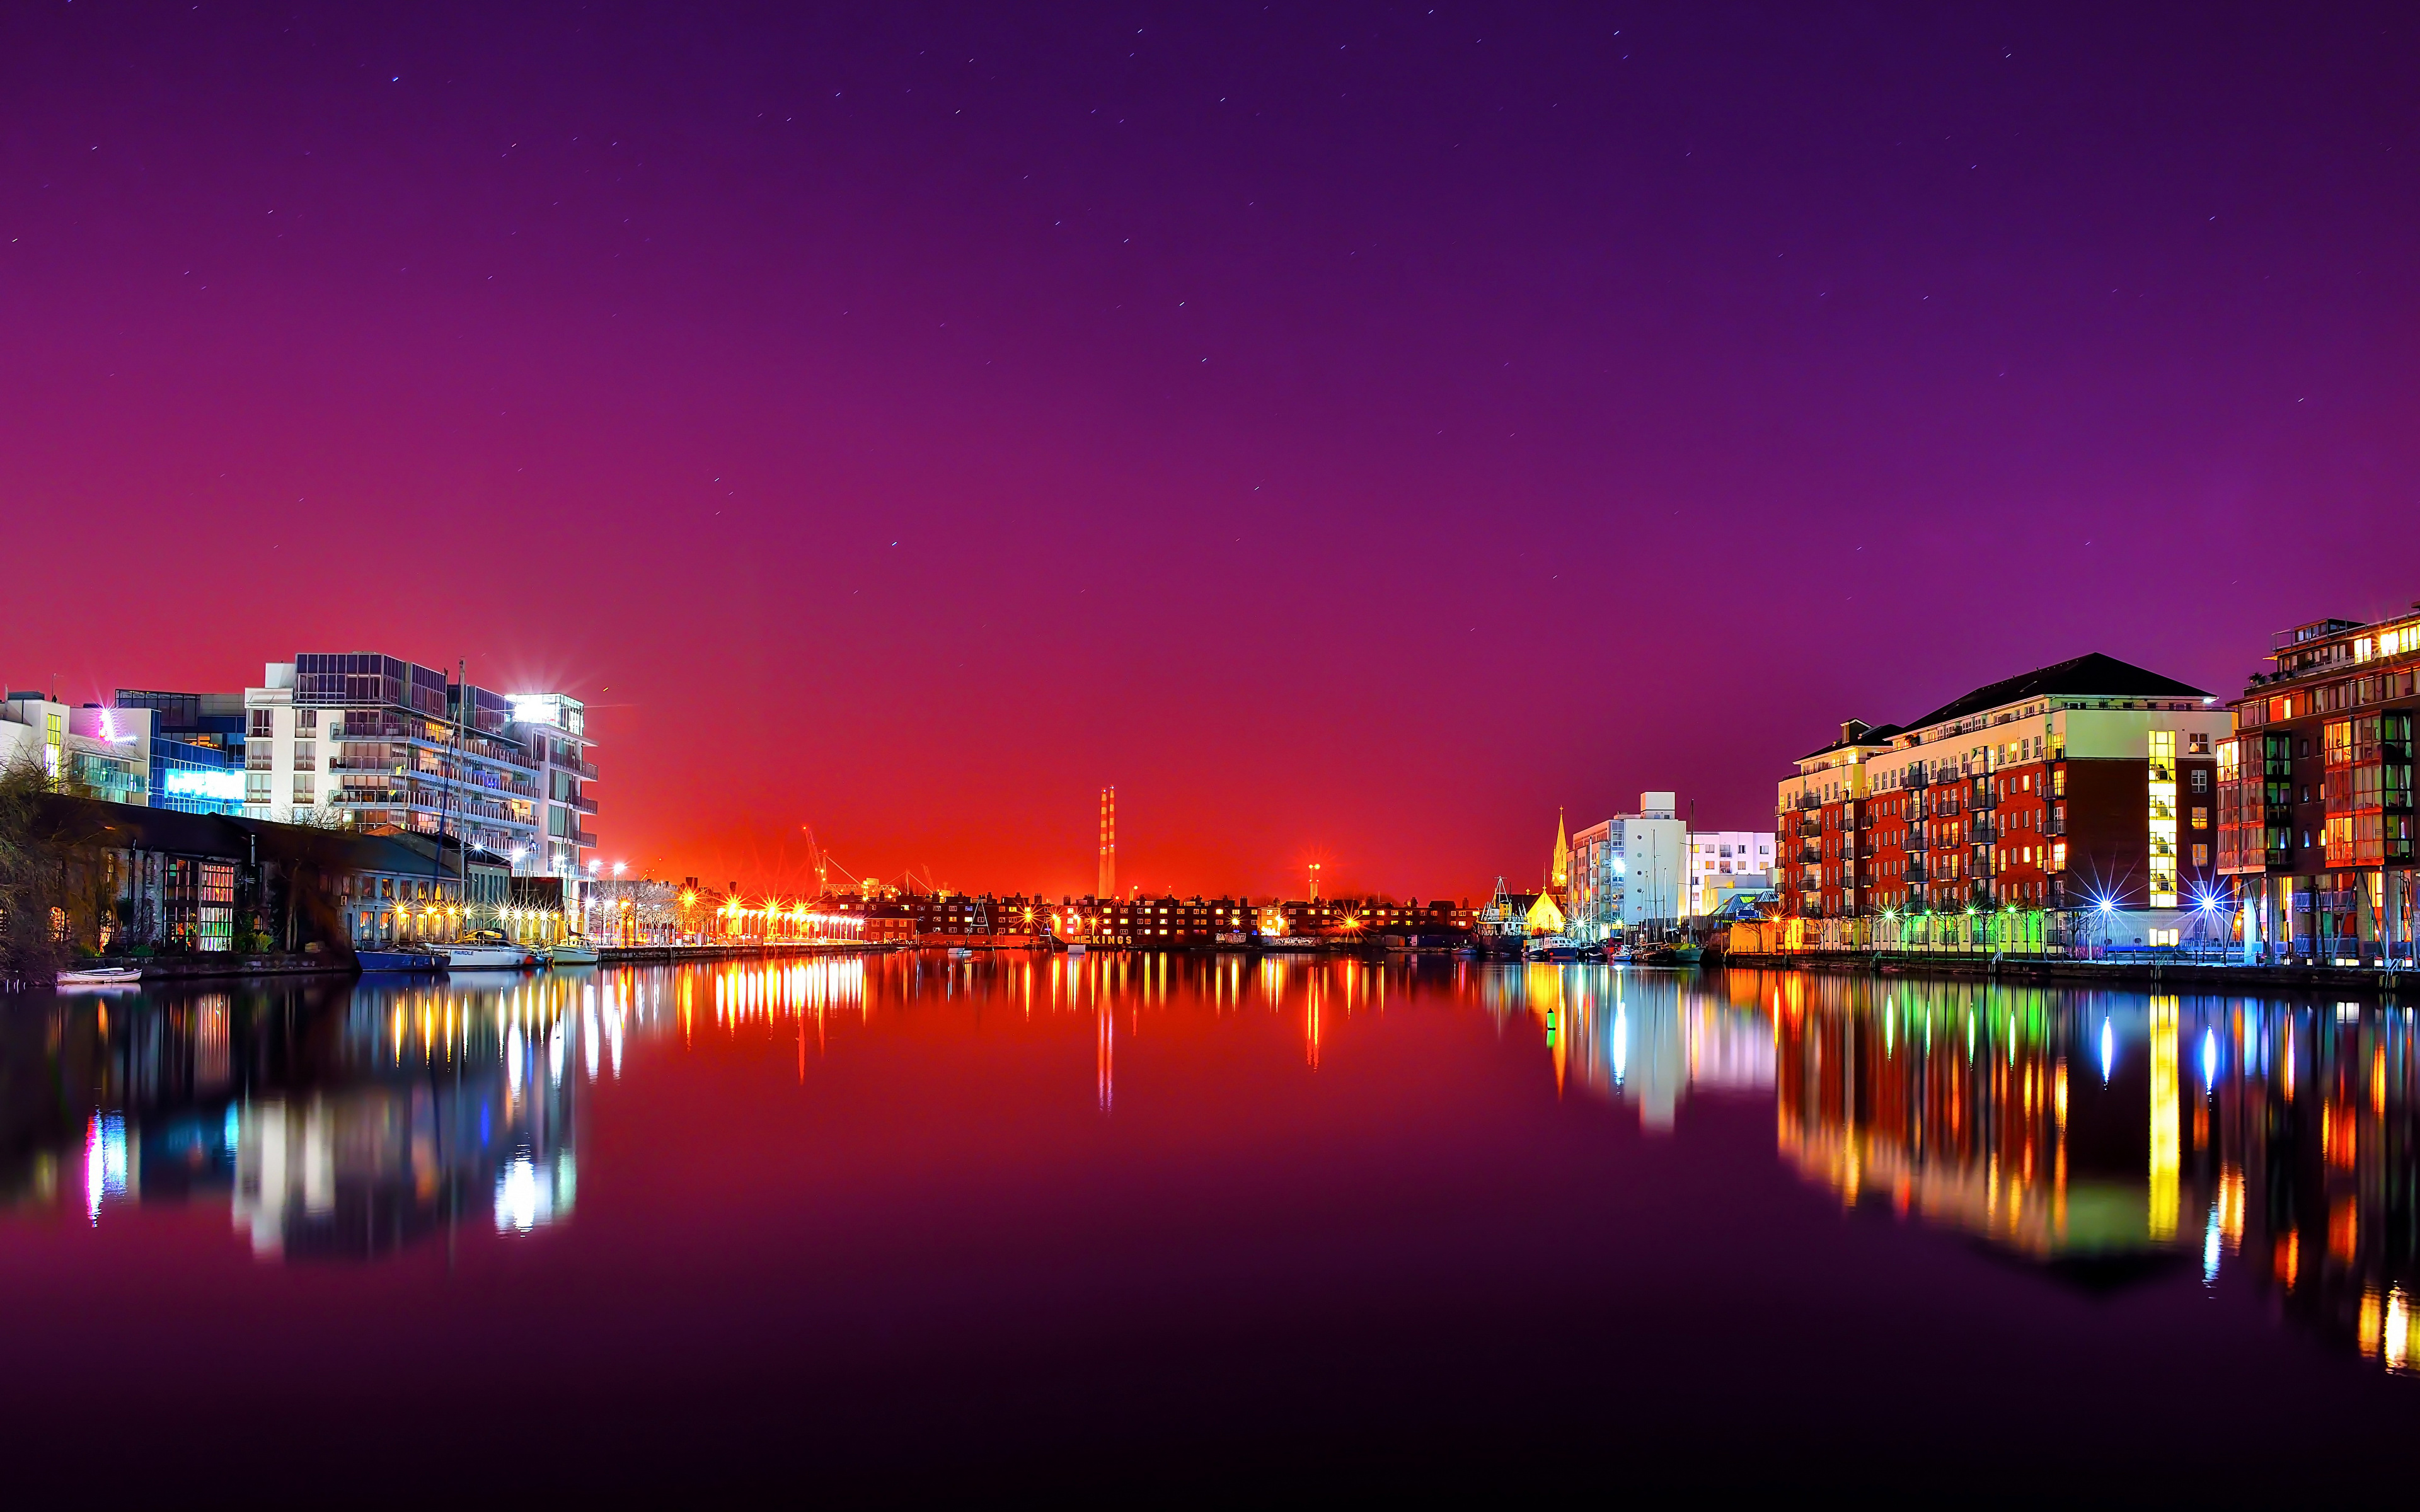 Images Cities Ireland River Dublin Night Building 3840x2400